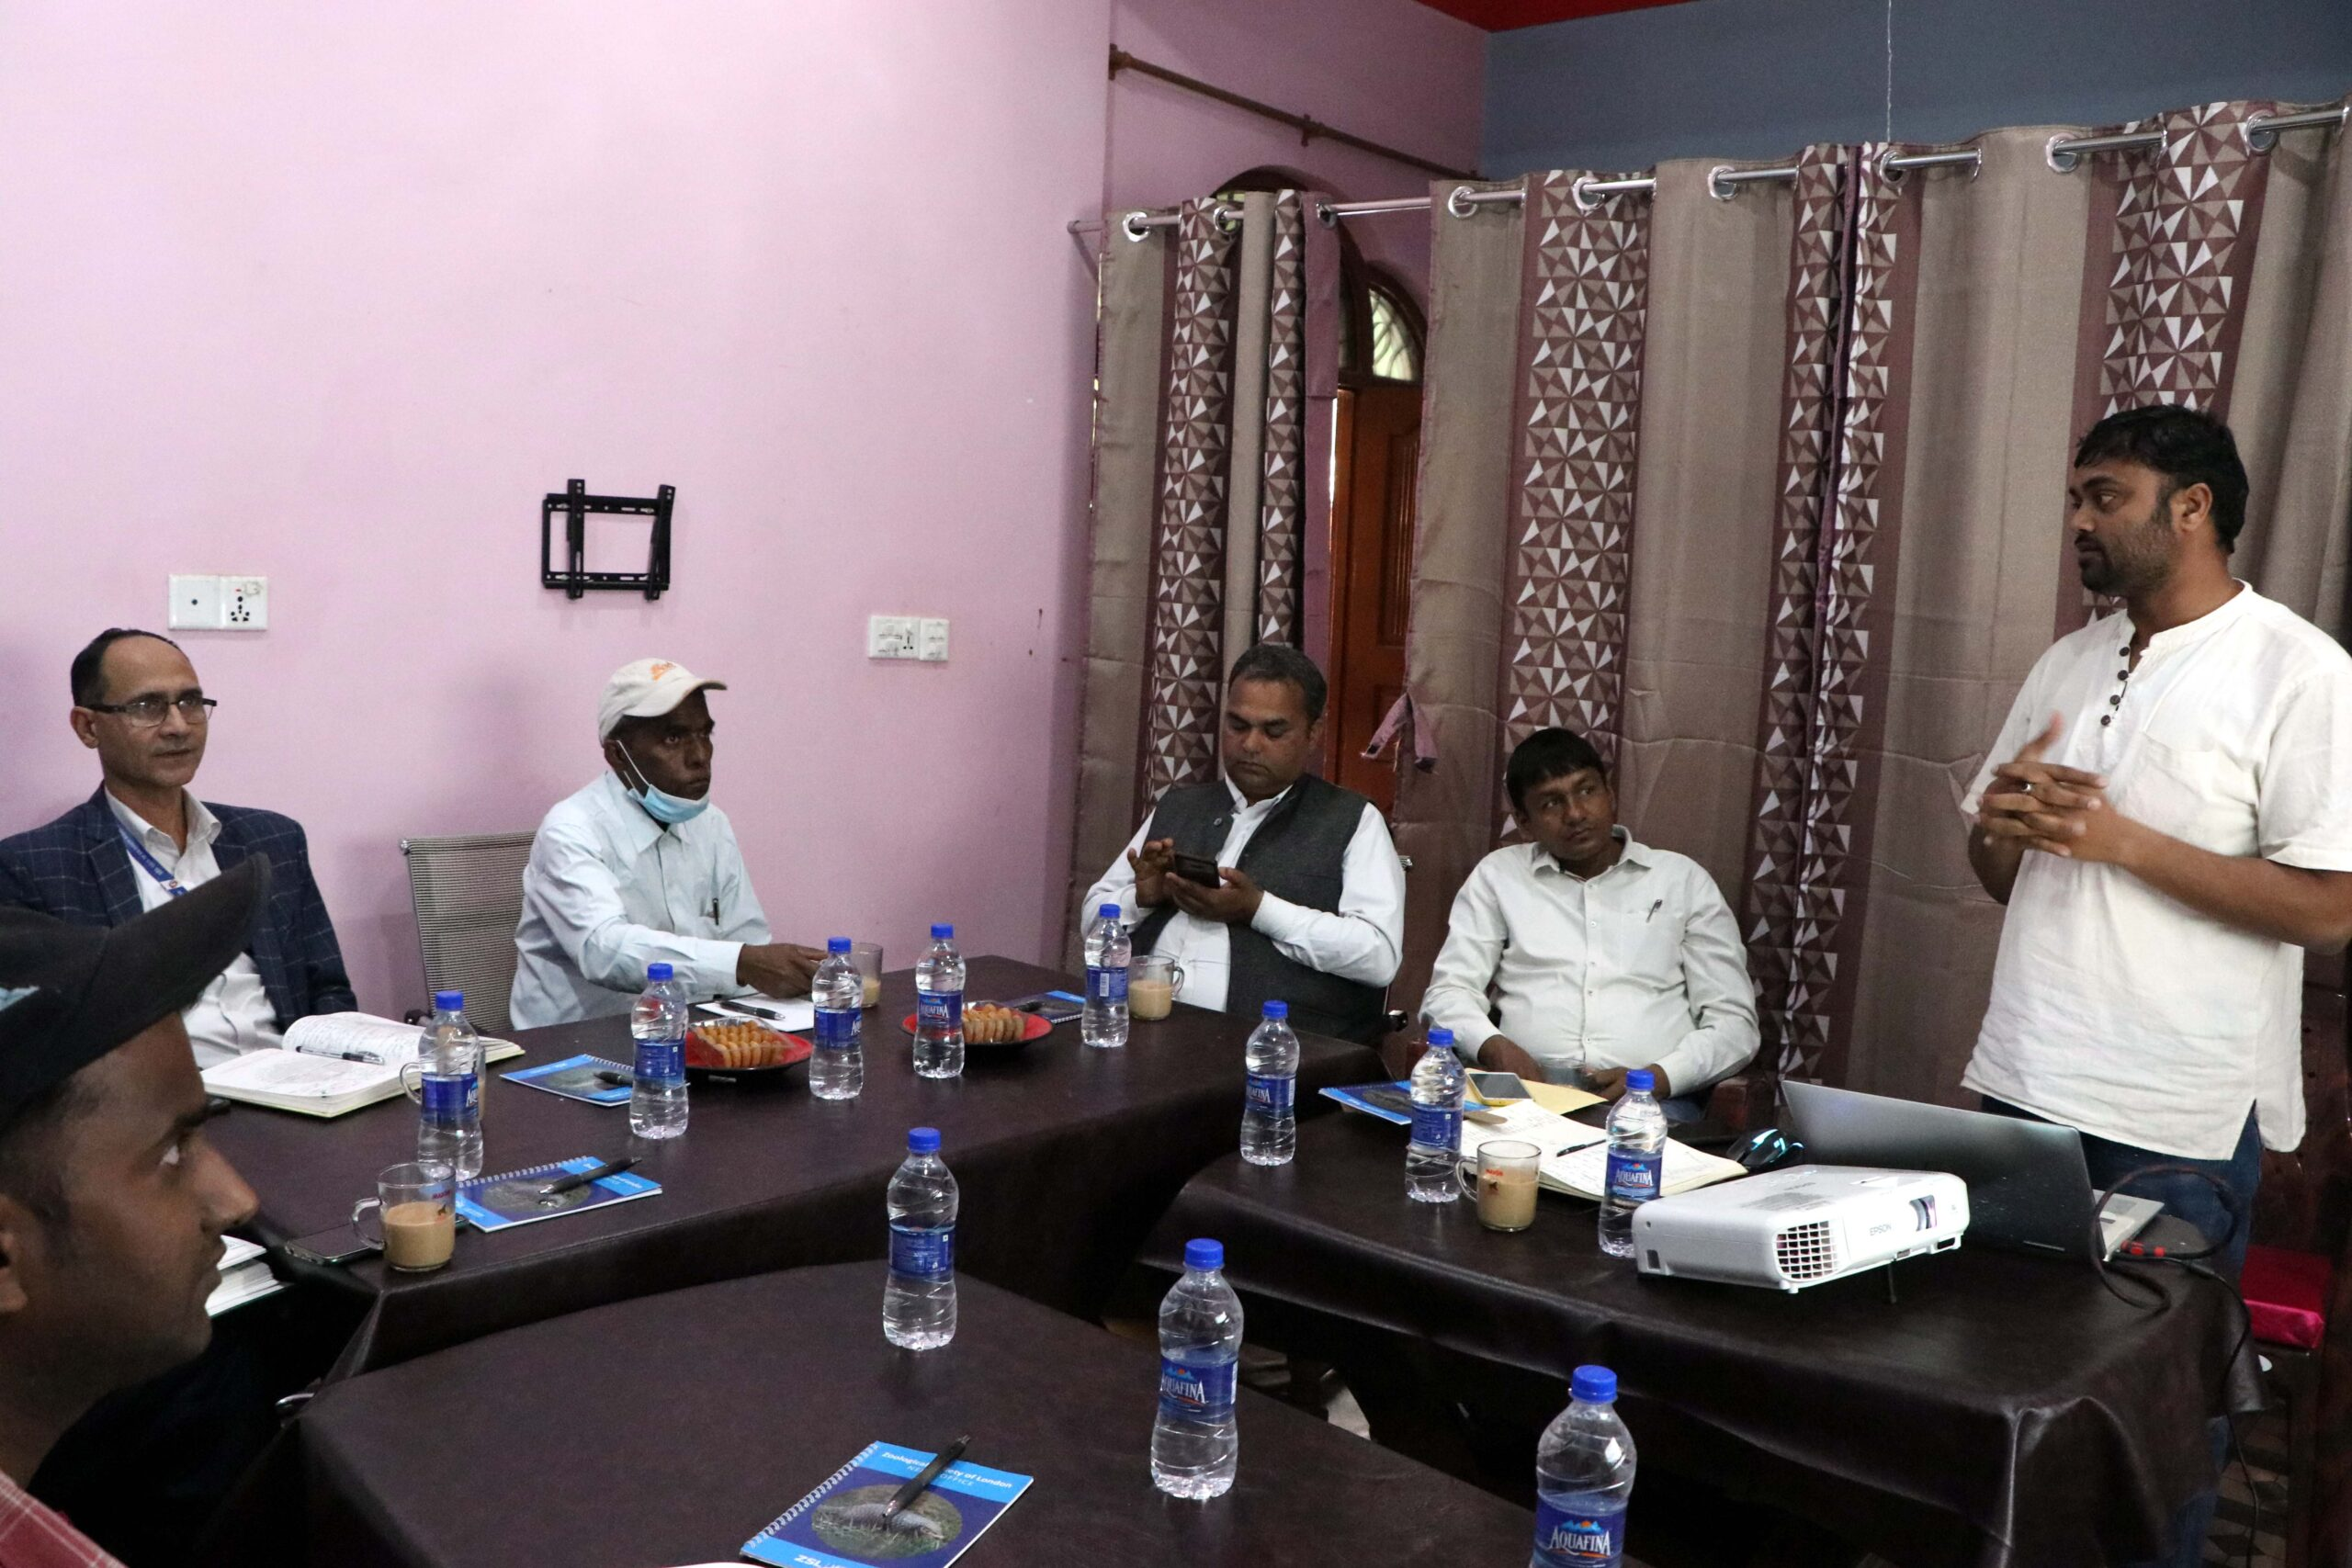 MWT Chairman presenting during meeting